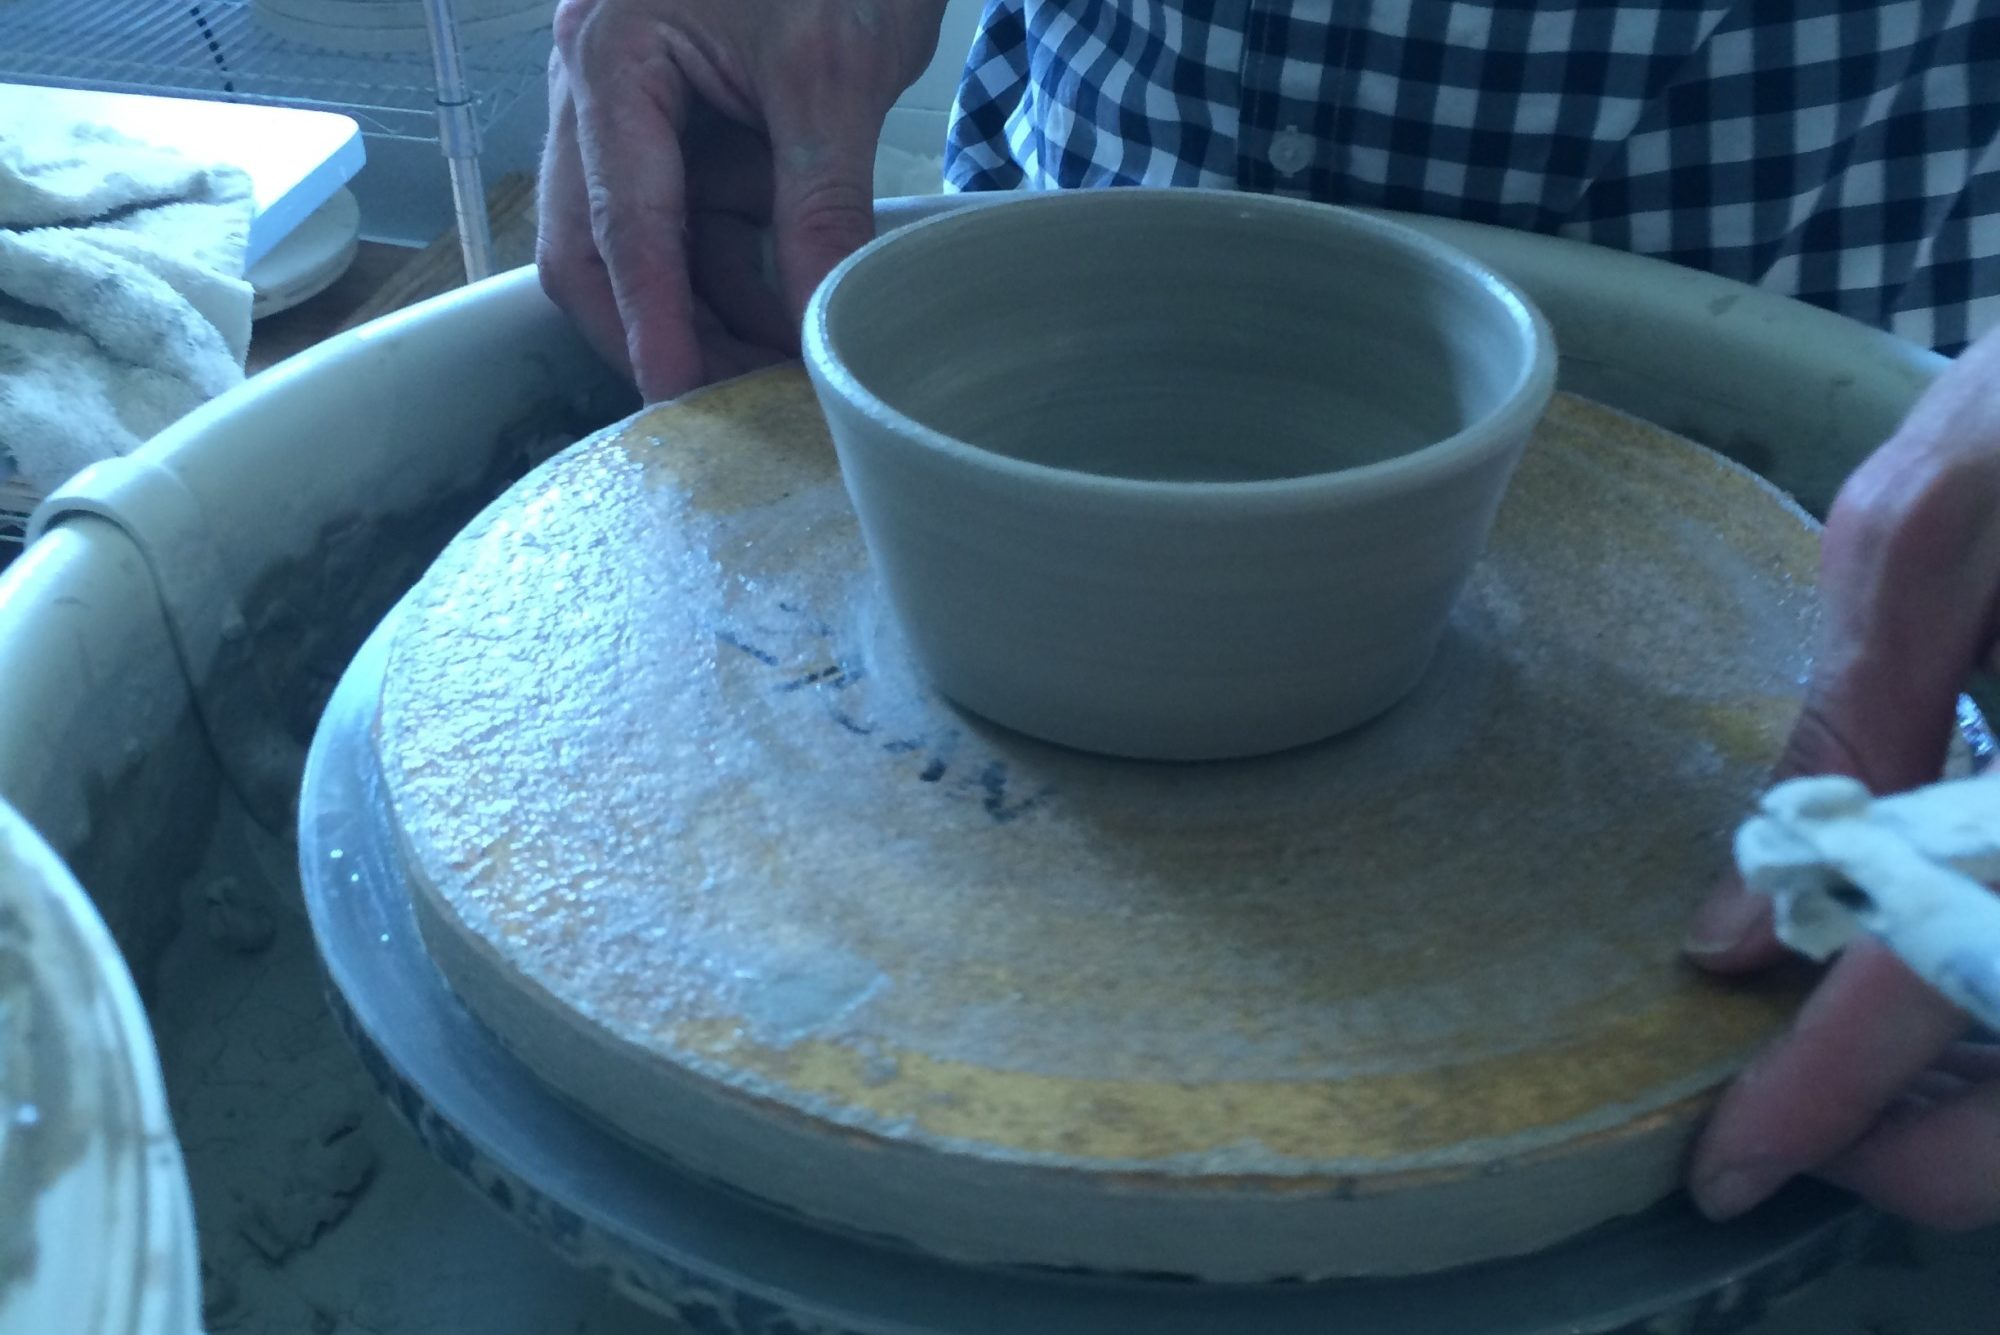 Farmhouse Pottery - fresh from creative hands